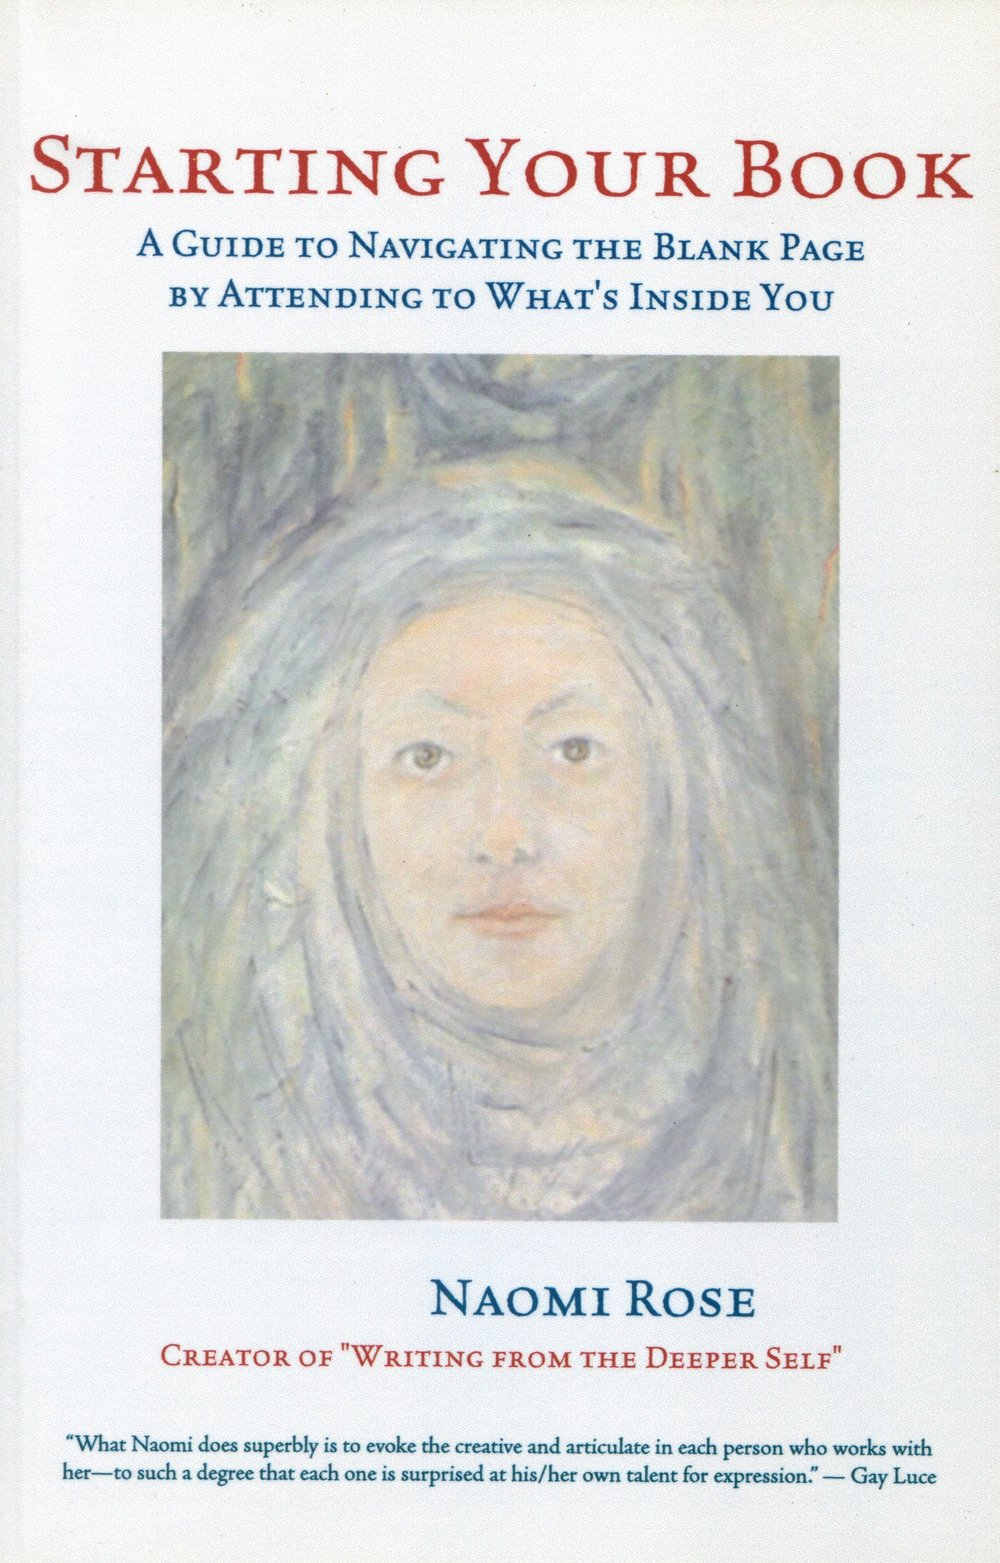 - STARTING YOUR BOOK: A Guide to Navigating the Blank Page by Attending to What's Inside You, by NAOMI ROSEA key to writing the book of your heart where the essential ingredient is not a technique or formula, but what's inside you.